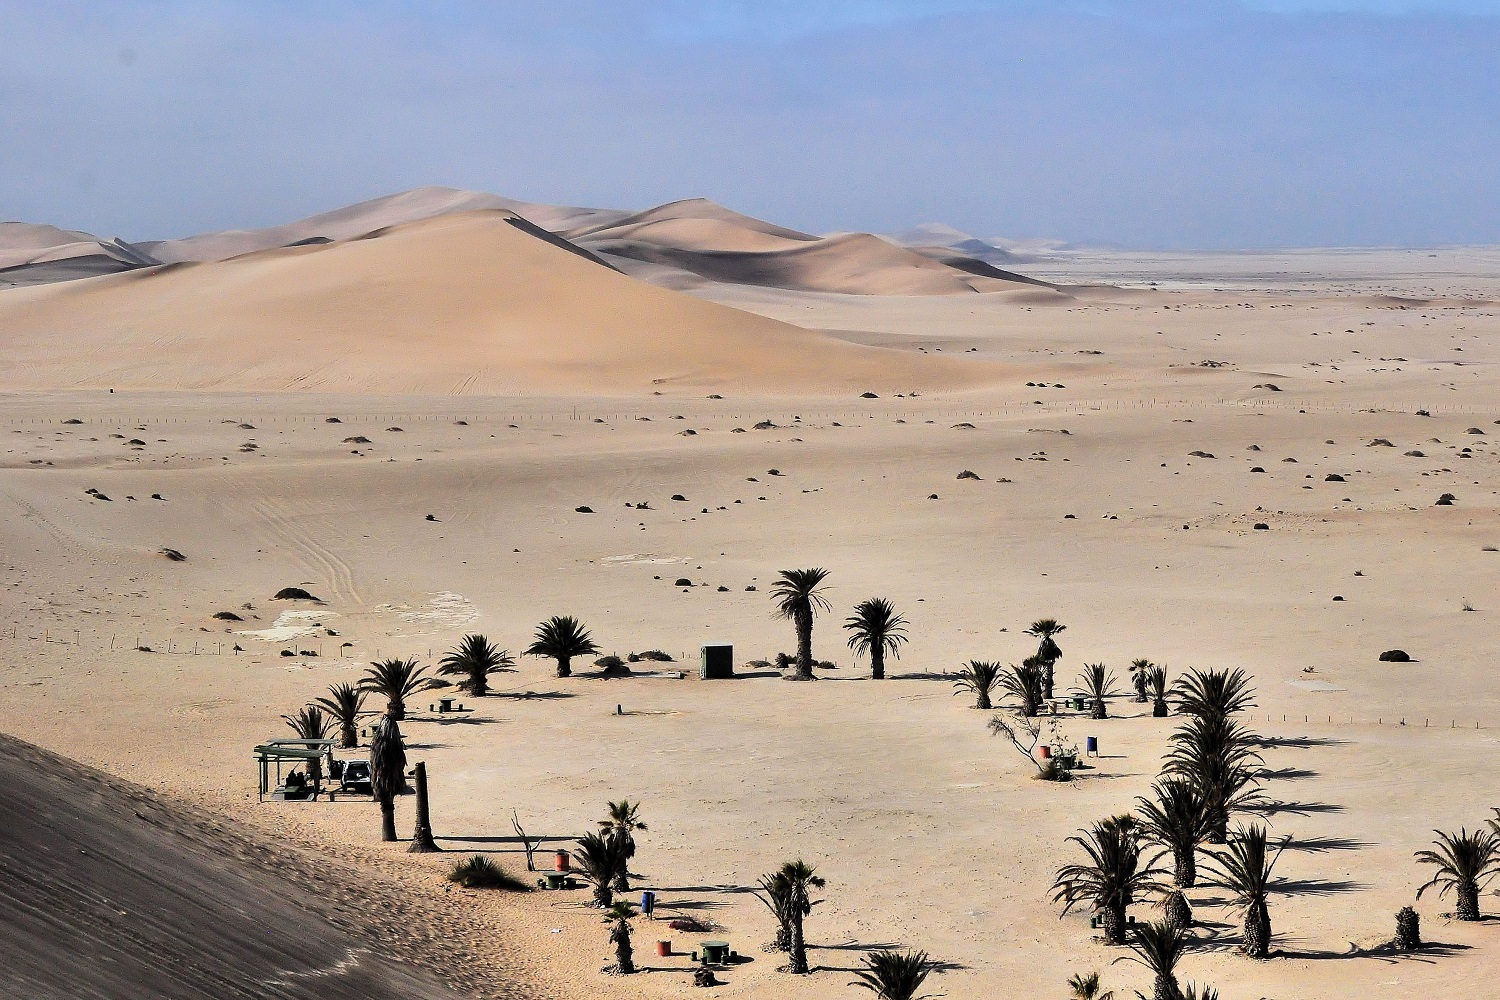 The view from  Dune 7  is spectacular. At a height of 385 m (1,260 ft), it is the highest sand dune in the world.